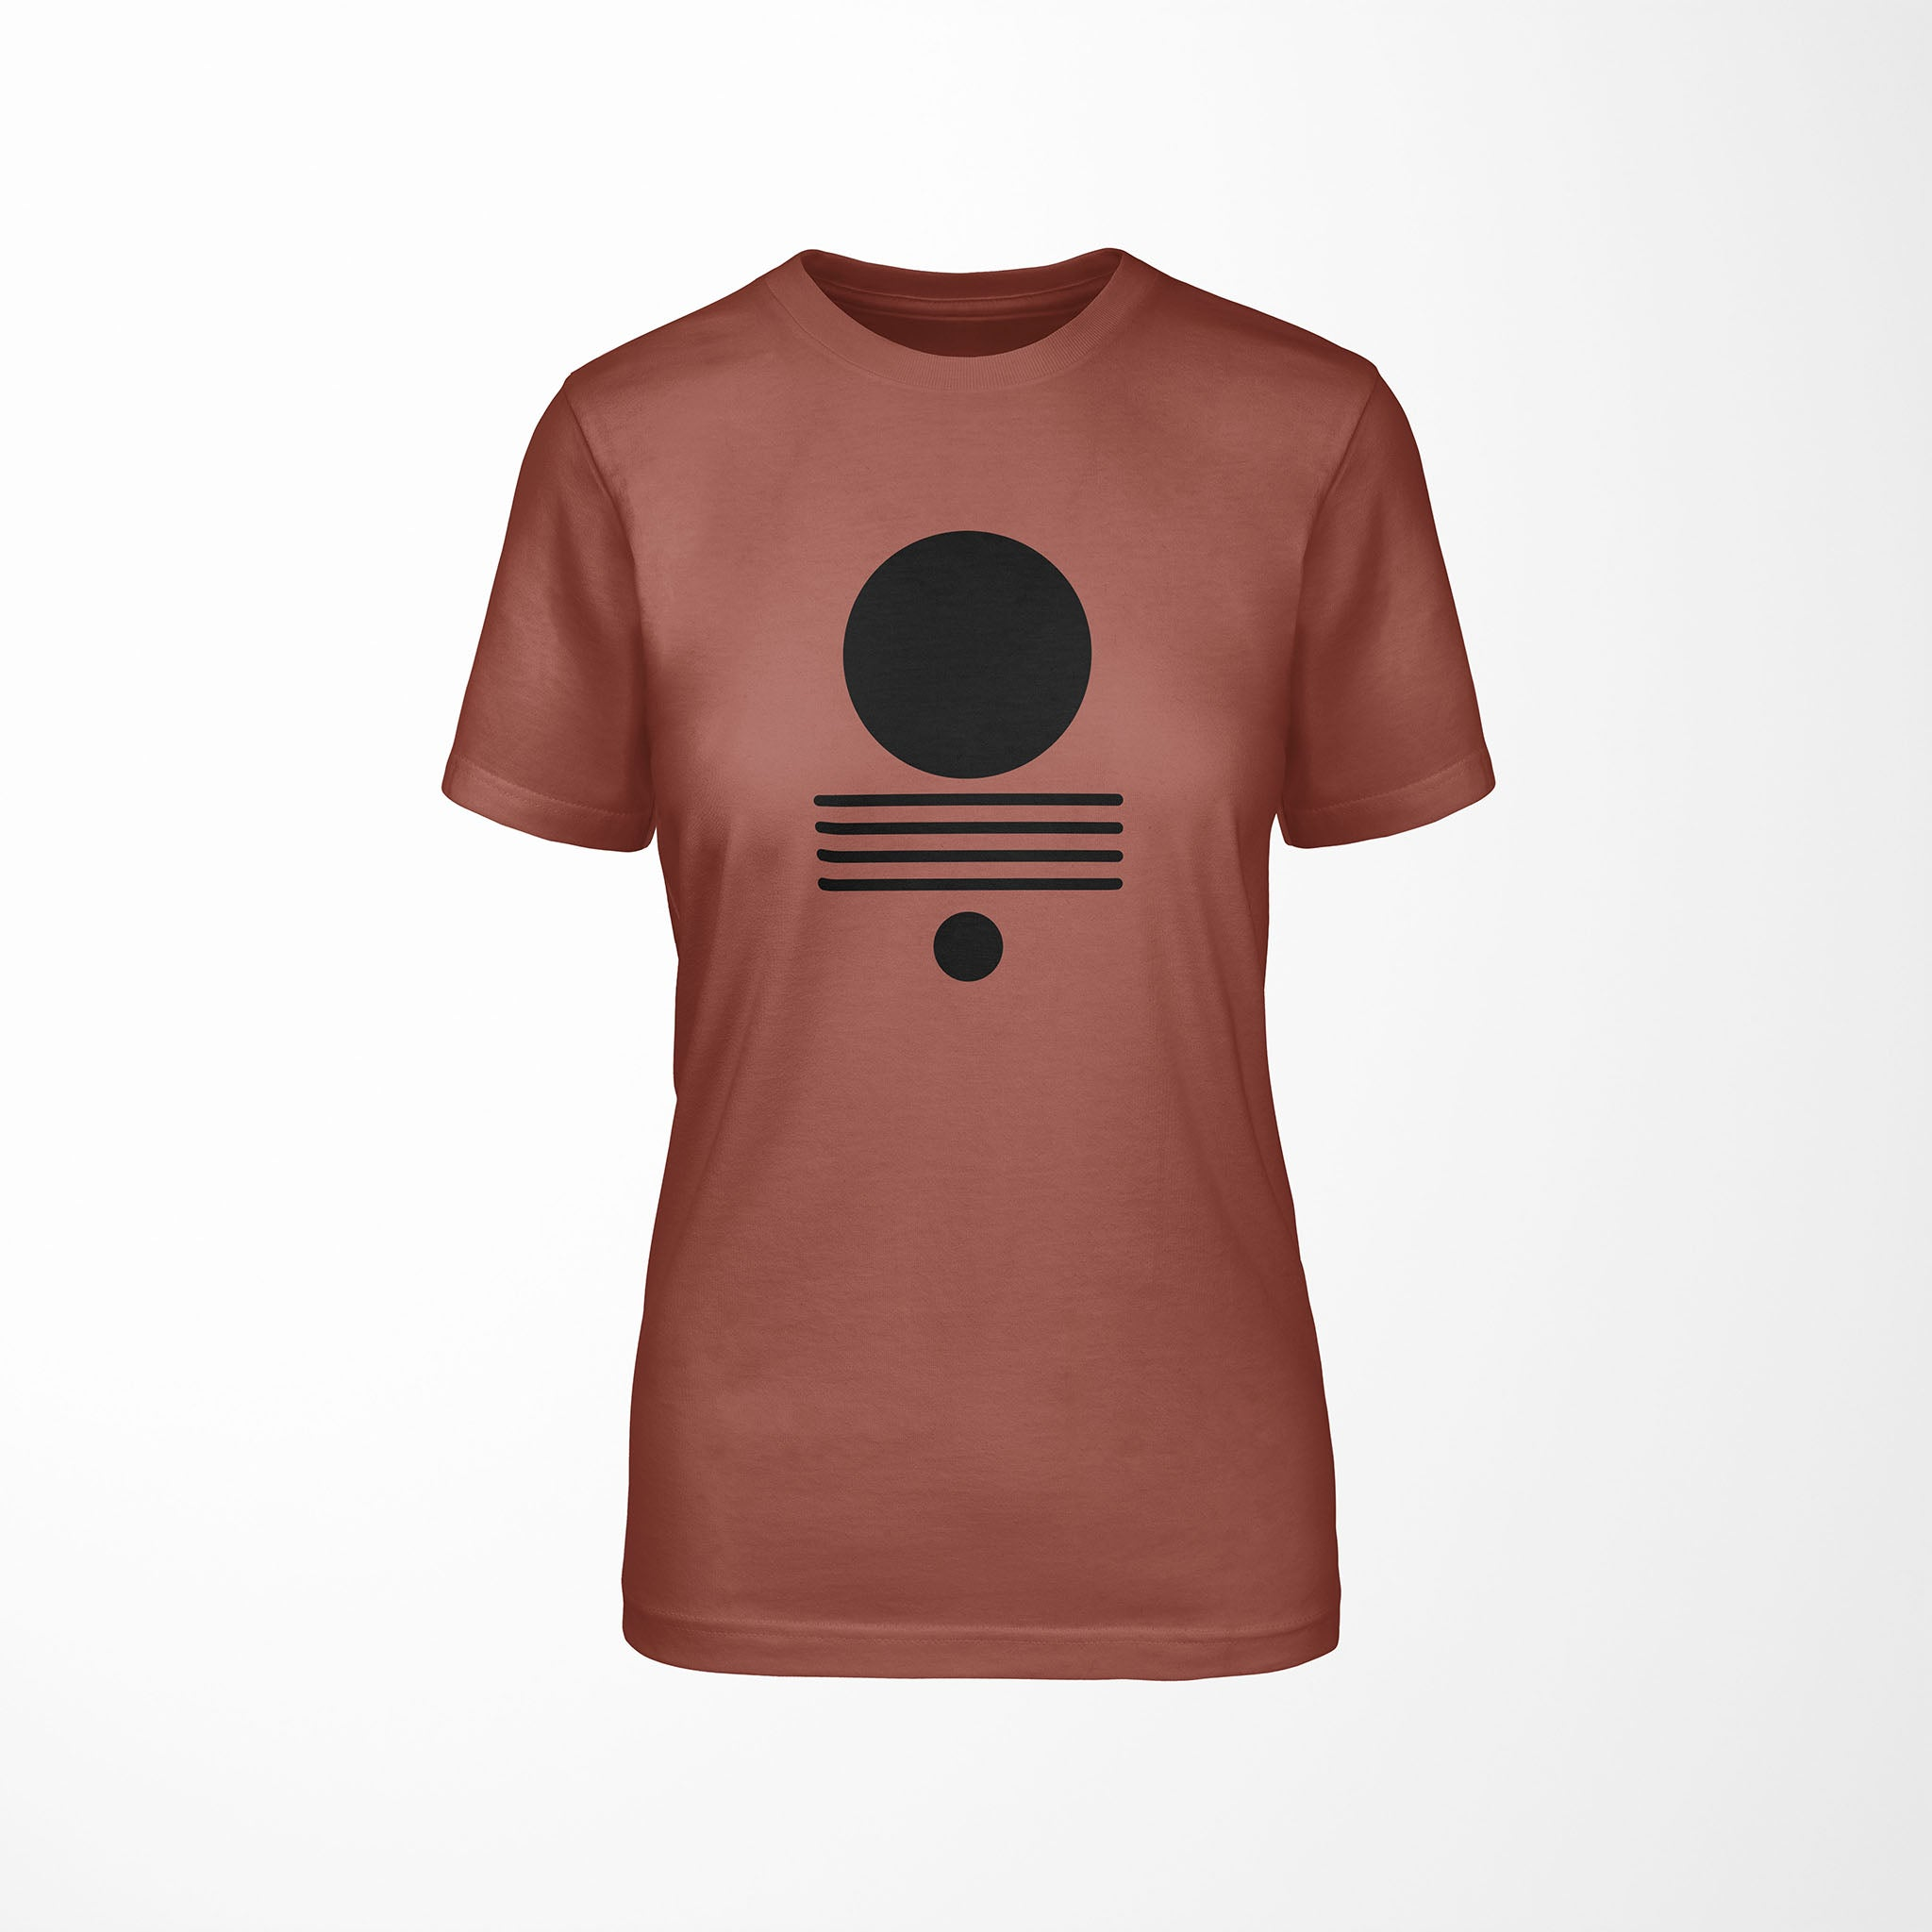 ELEMENTS Relaxed Fit Women's Triblend Clay T-Shirt front